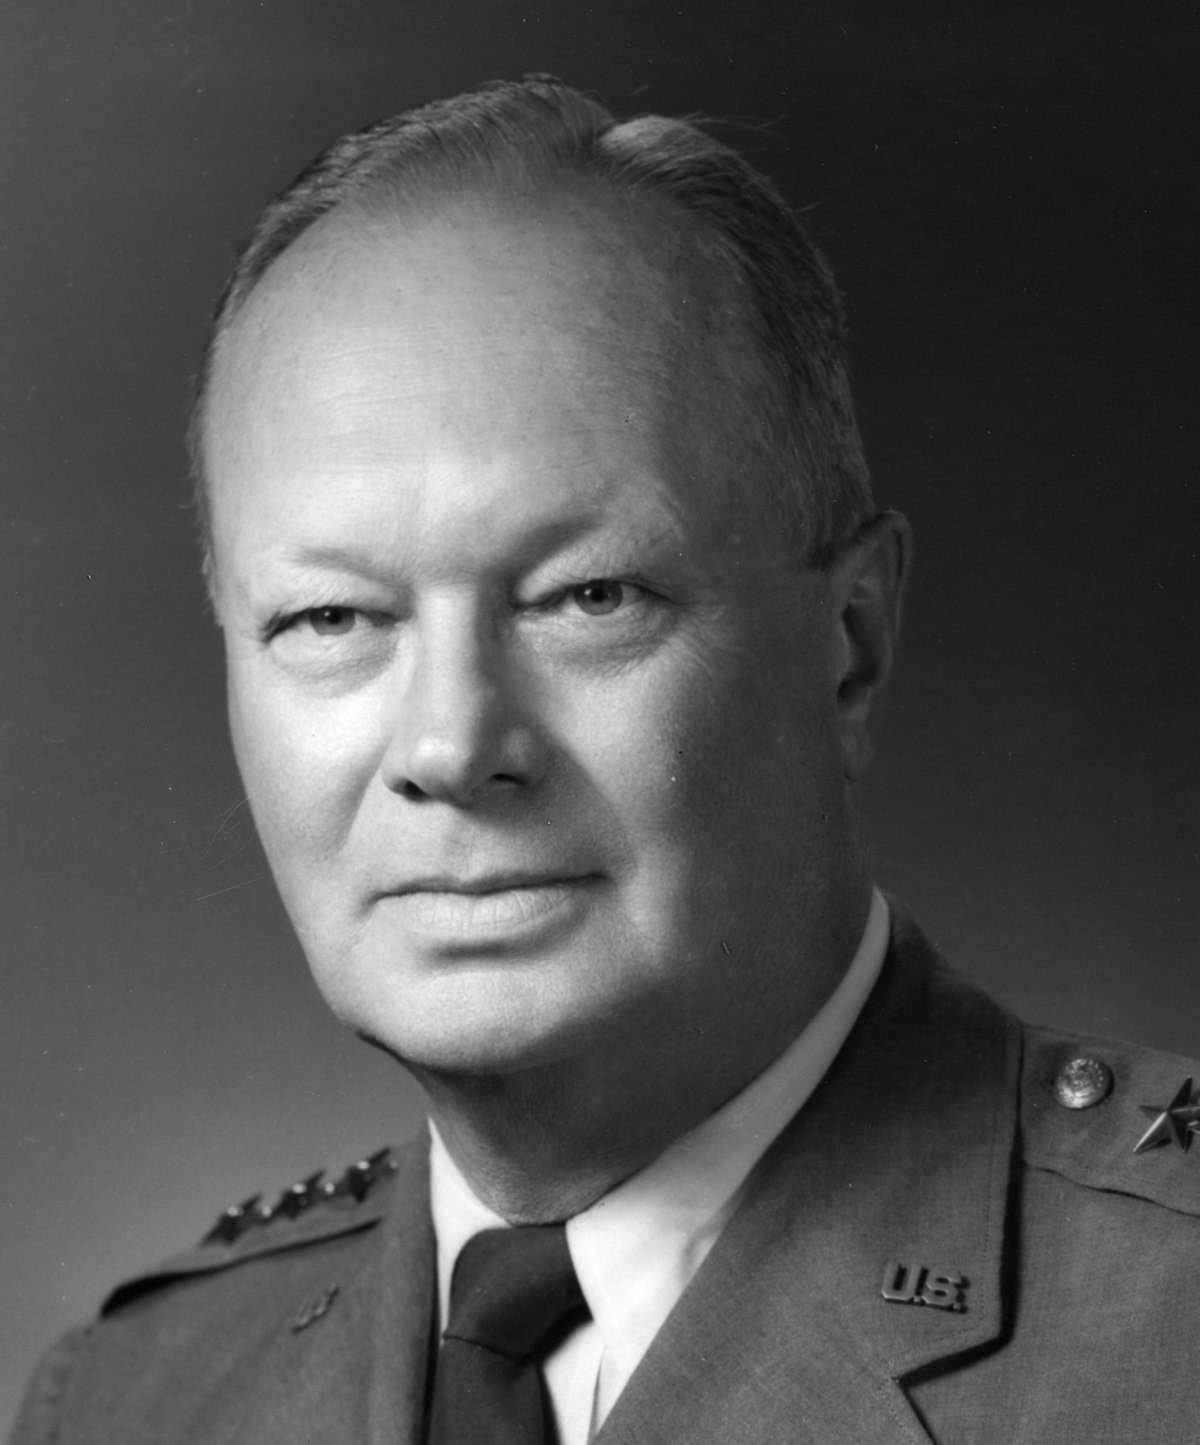 Air Force Academy >> Truman H. Landon - Wikipedia